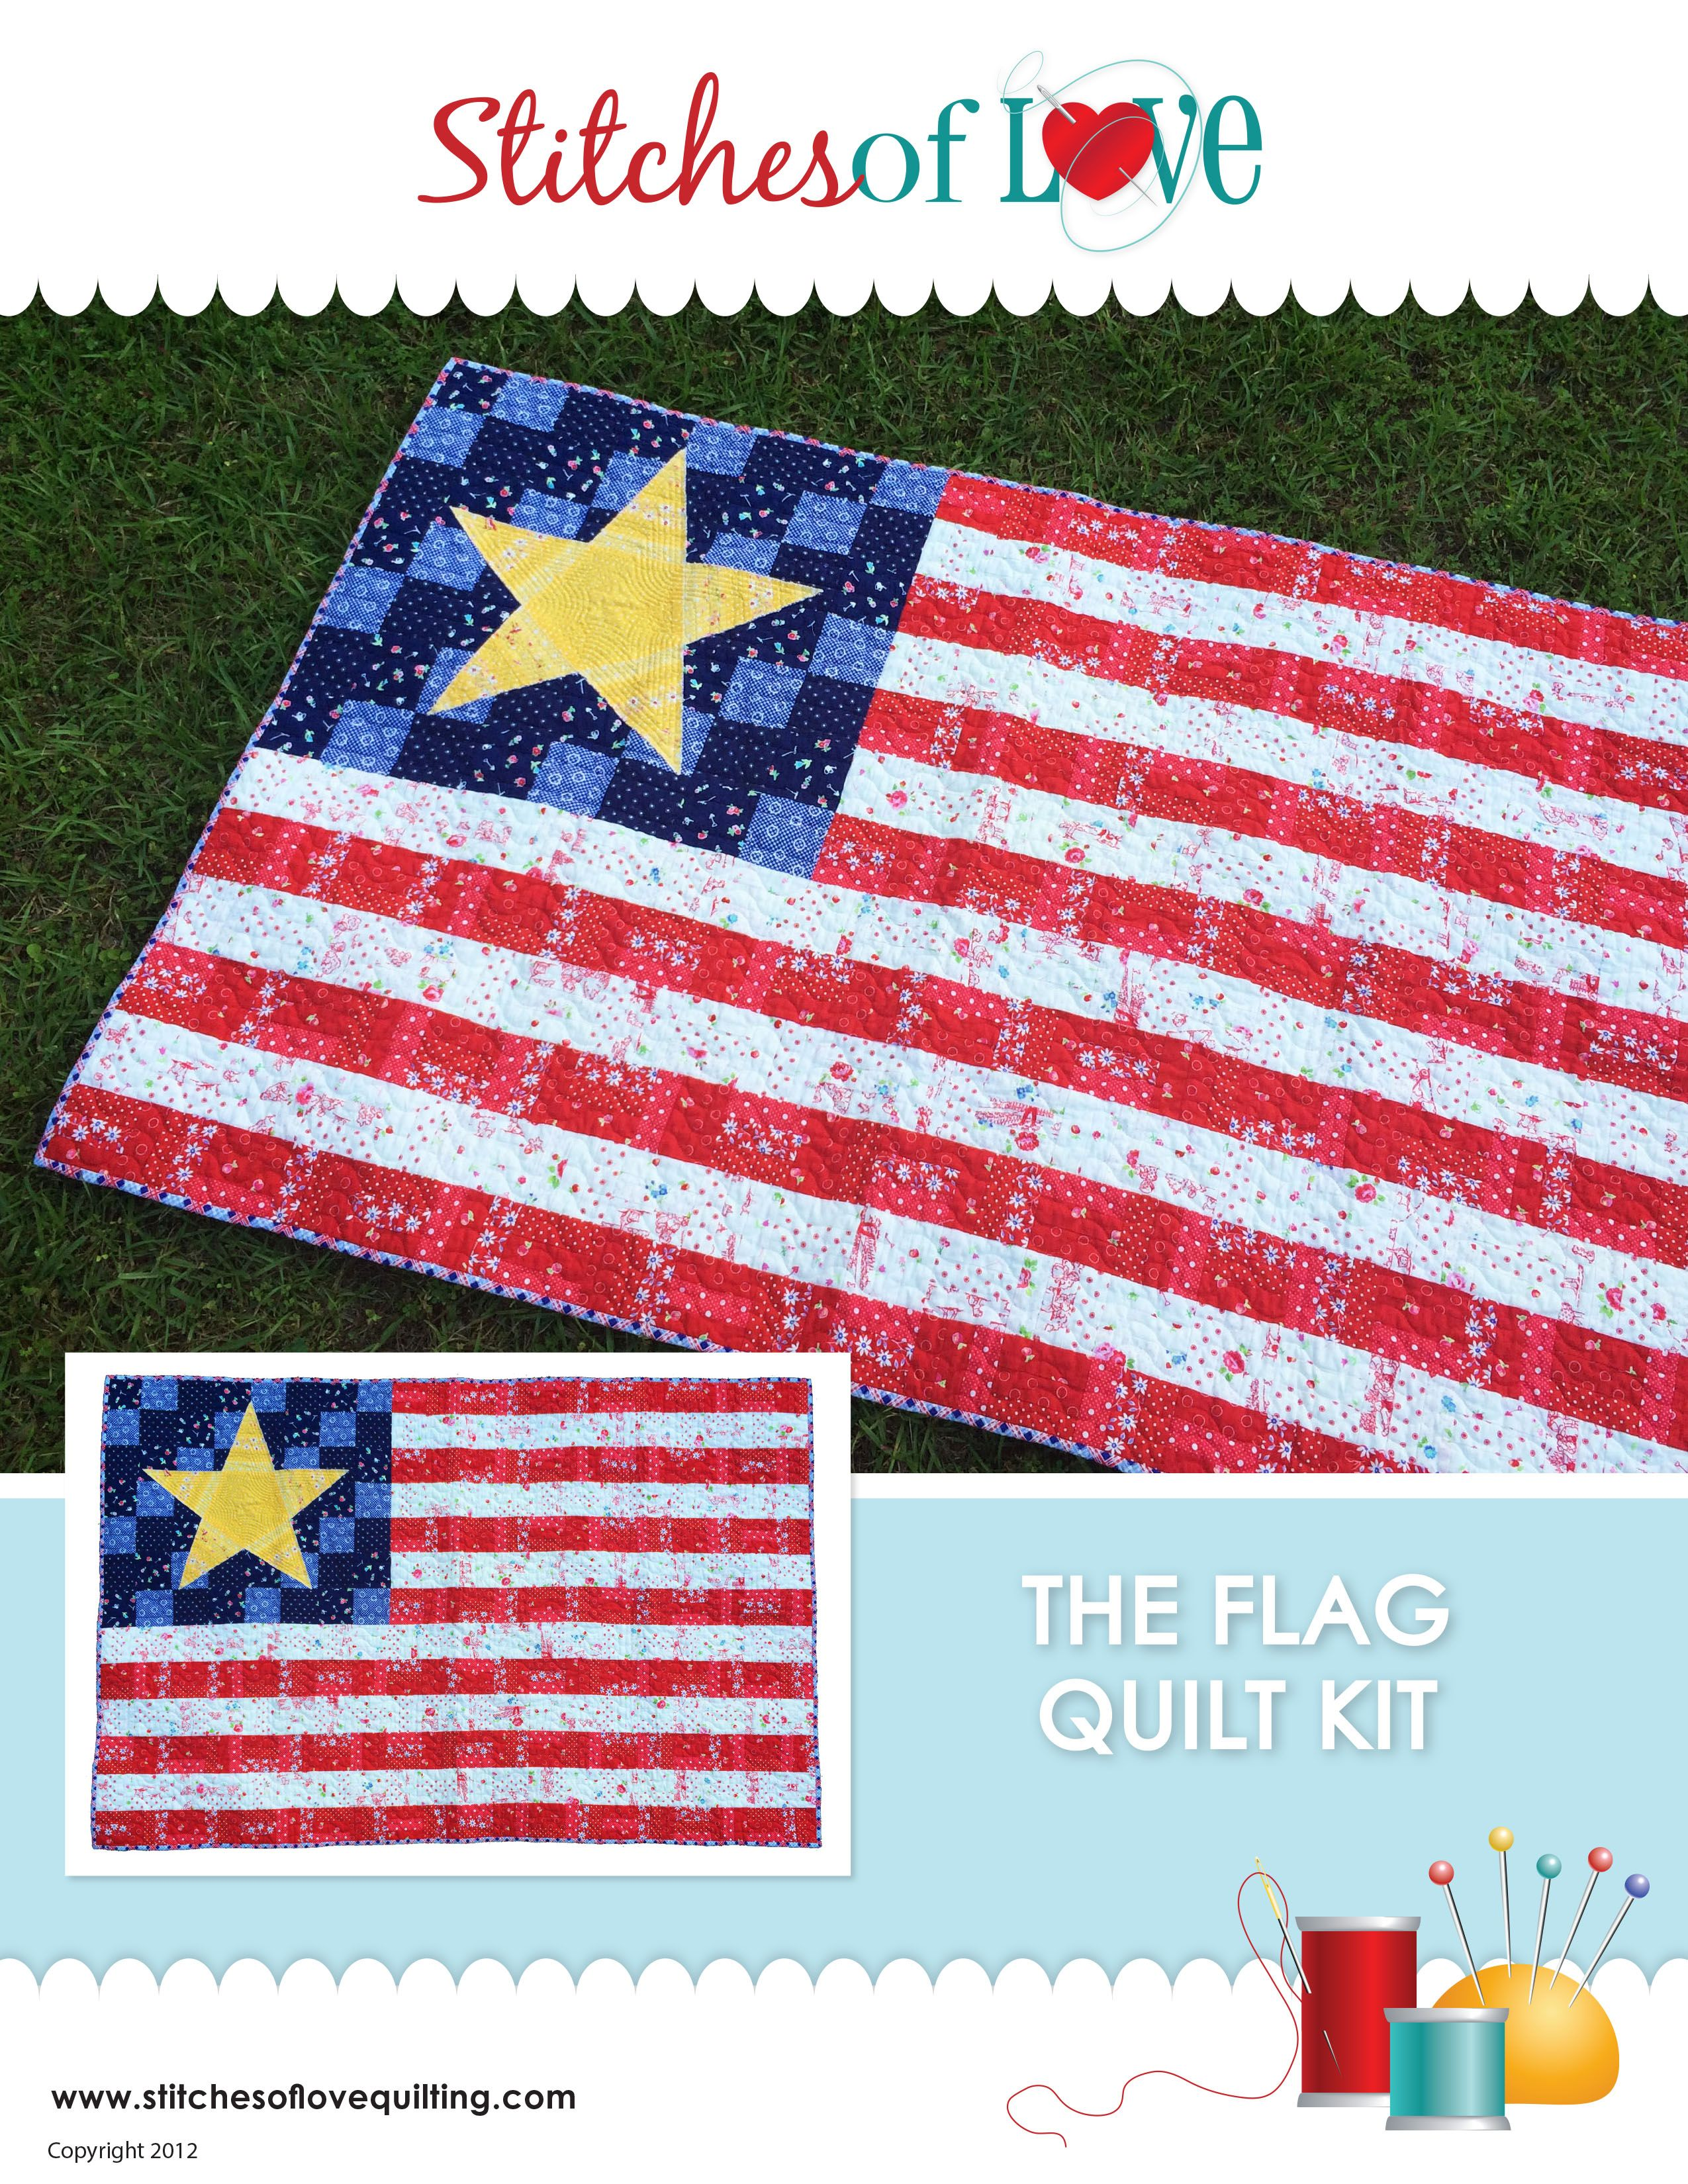 The Flag Quilt Kit - Stitches of Love Quilting | Stitches of Love Quilting